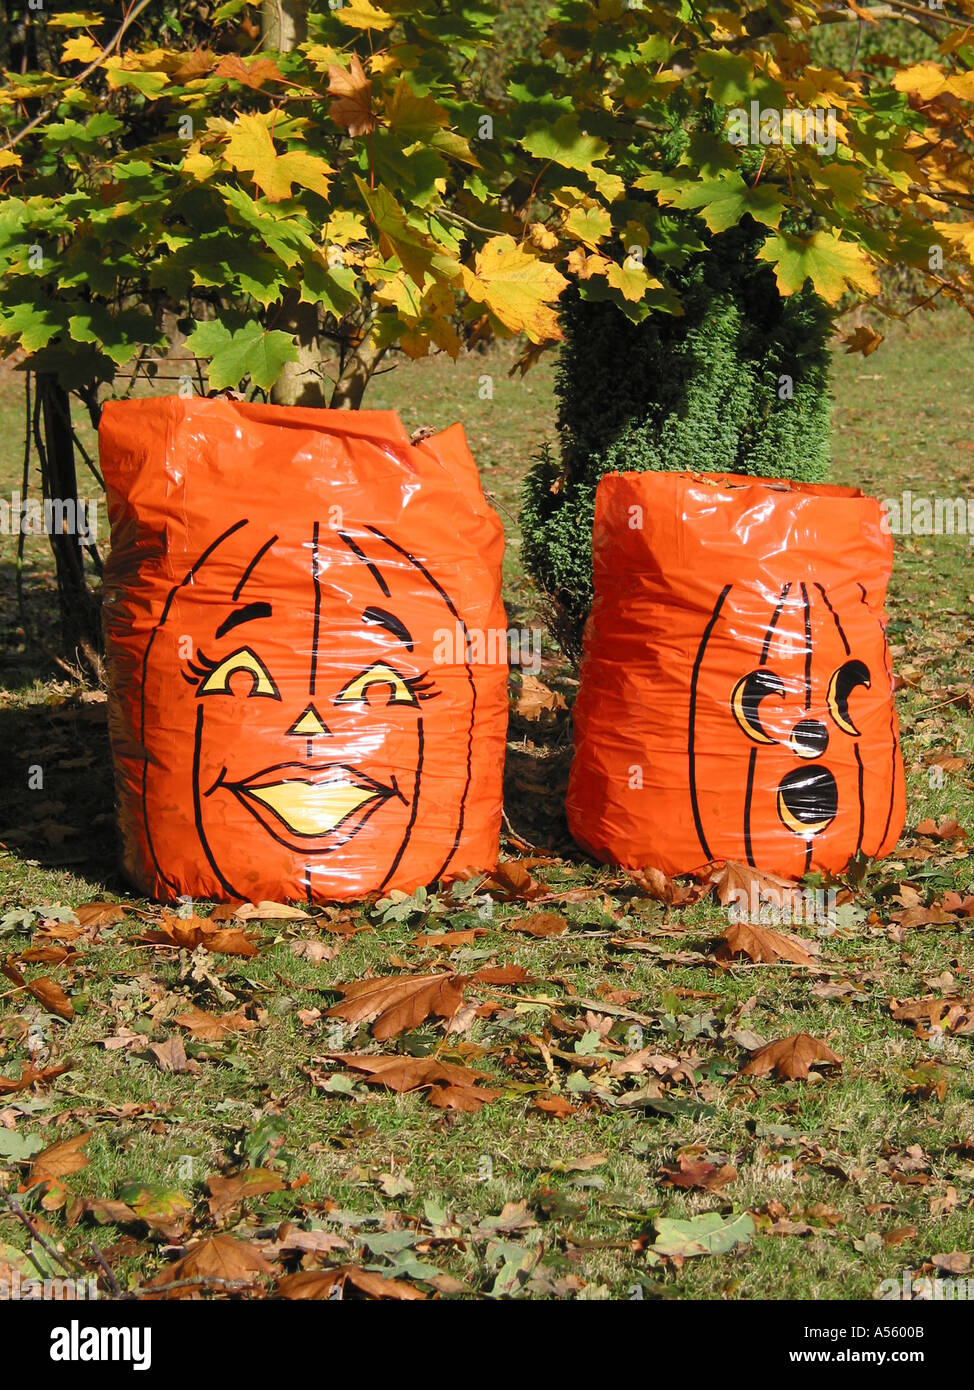 Pumpkin Plastic Bag Figures full with leaves Fall Autumn Colors Halloween ef0421f54